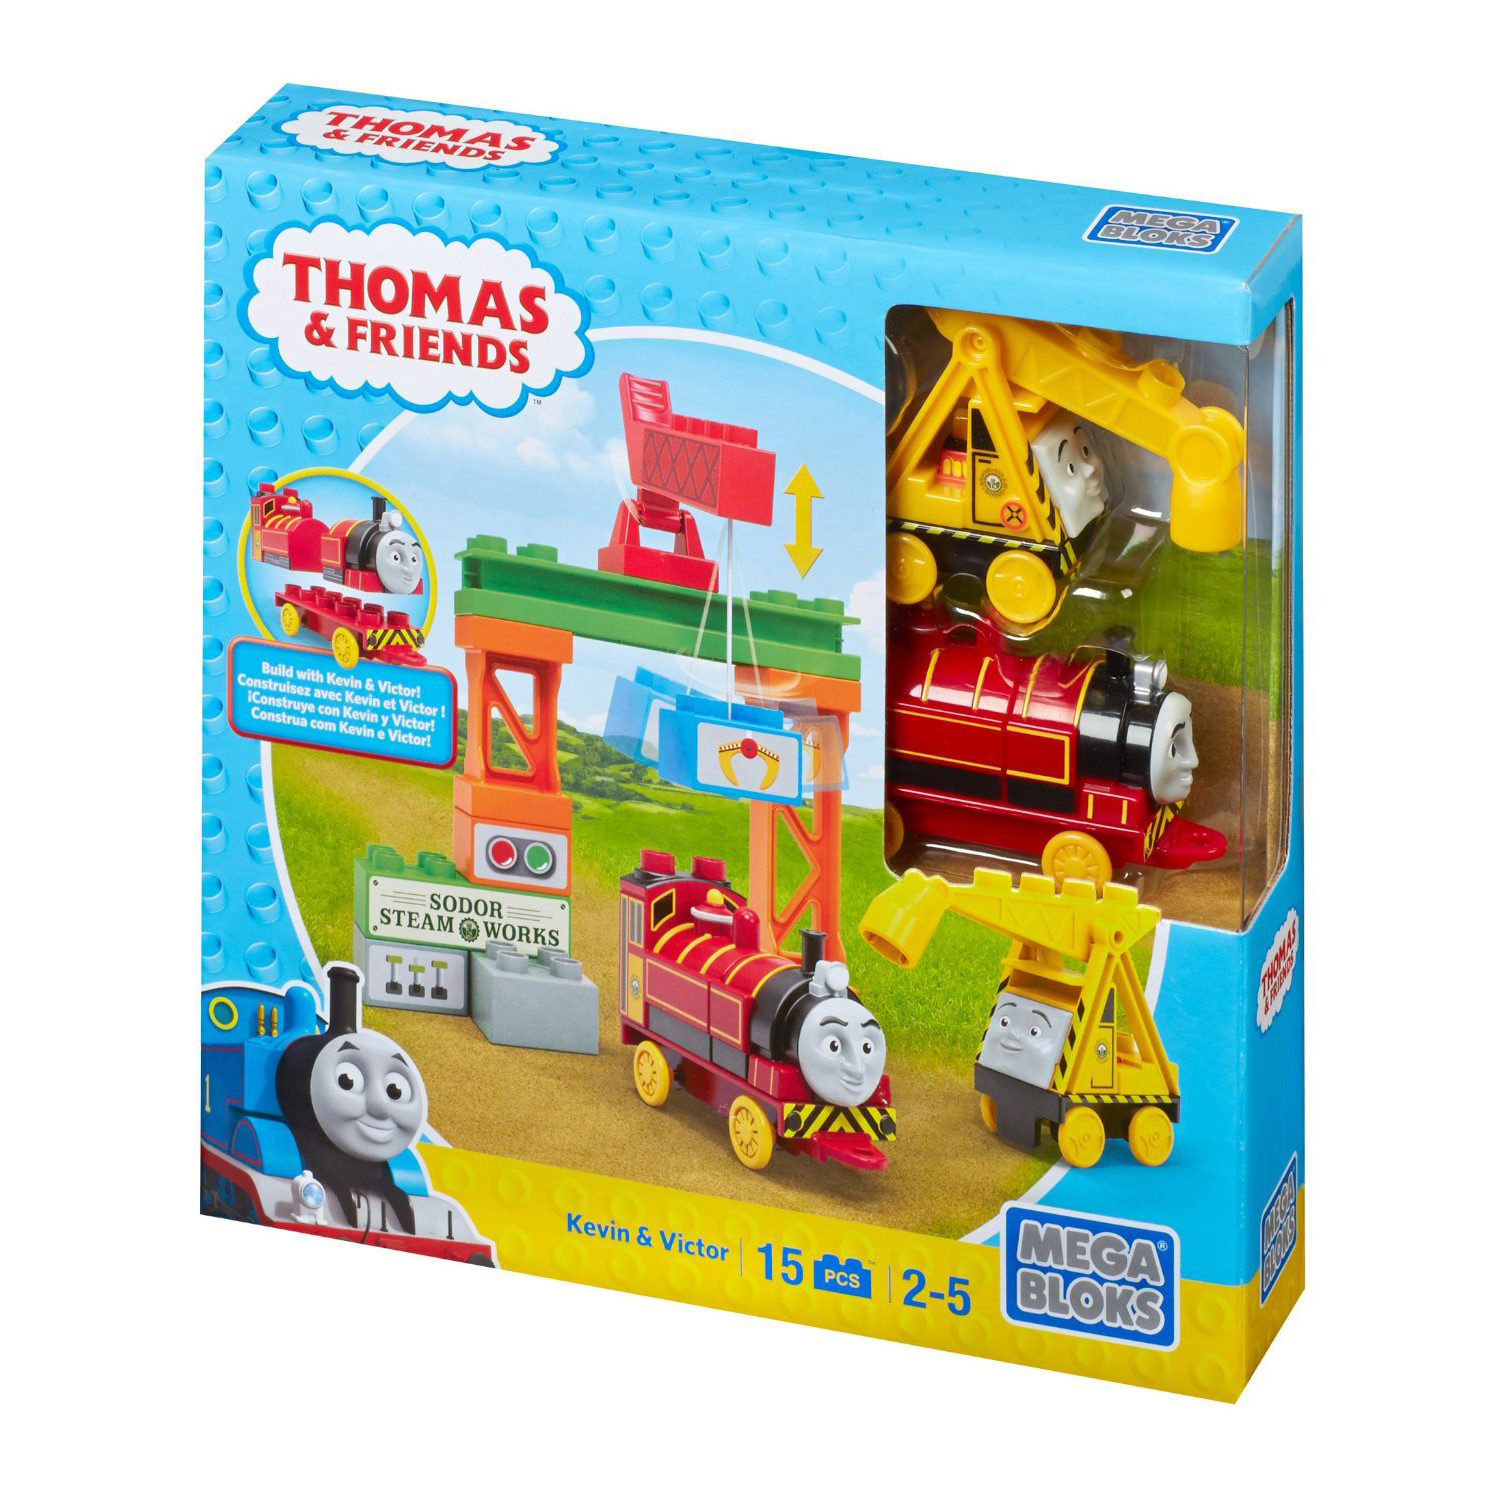 Mega Bloks Thomas Amp Friends Kevin Amp Victor Playset At